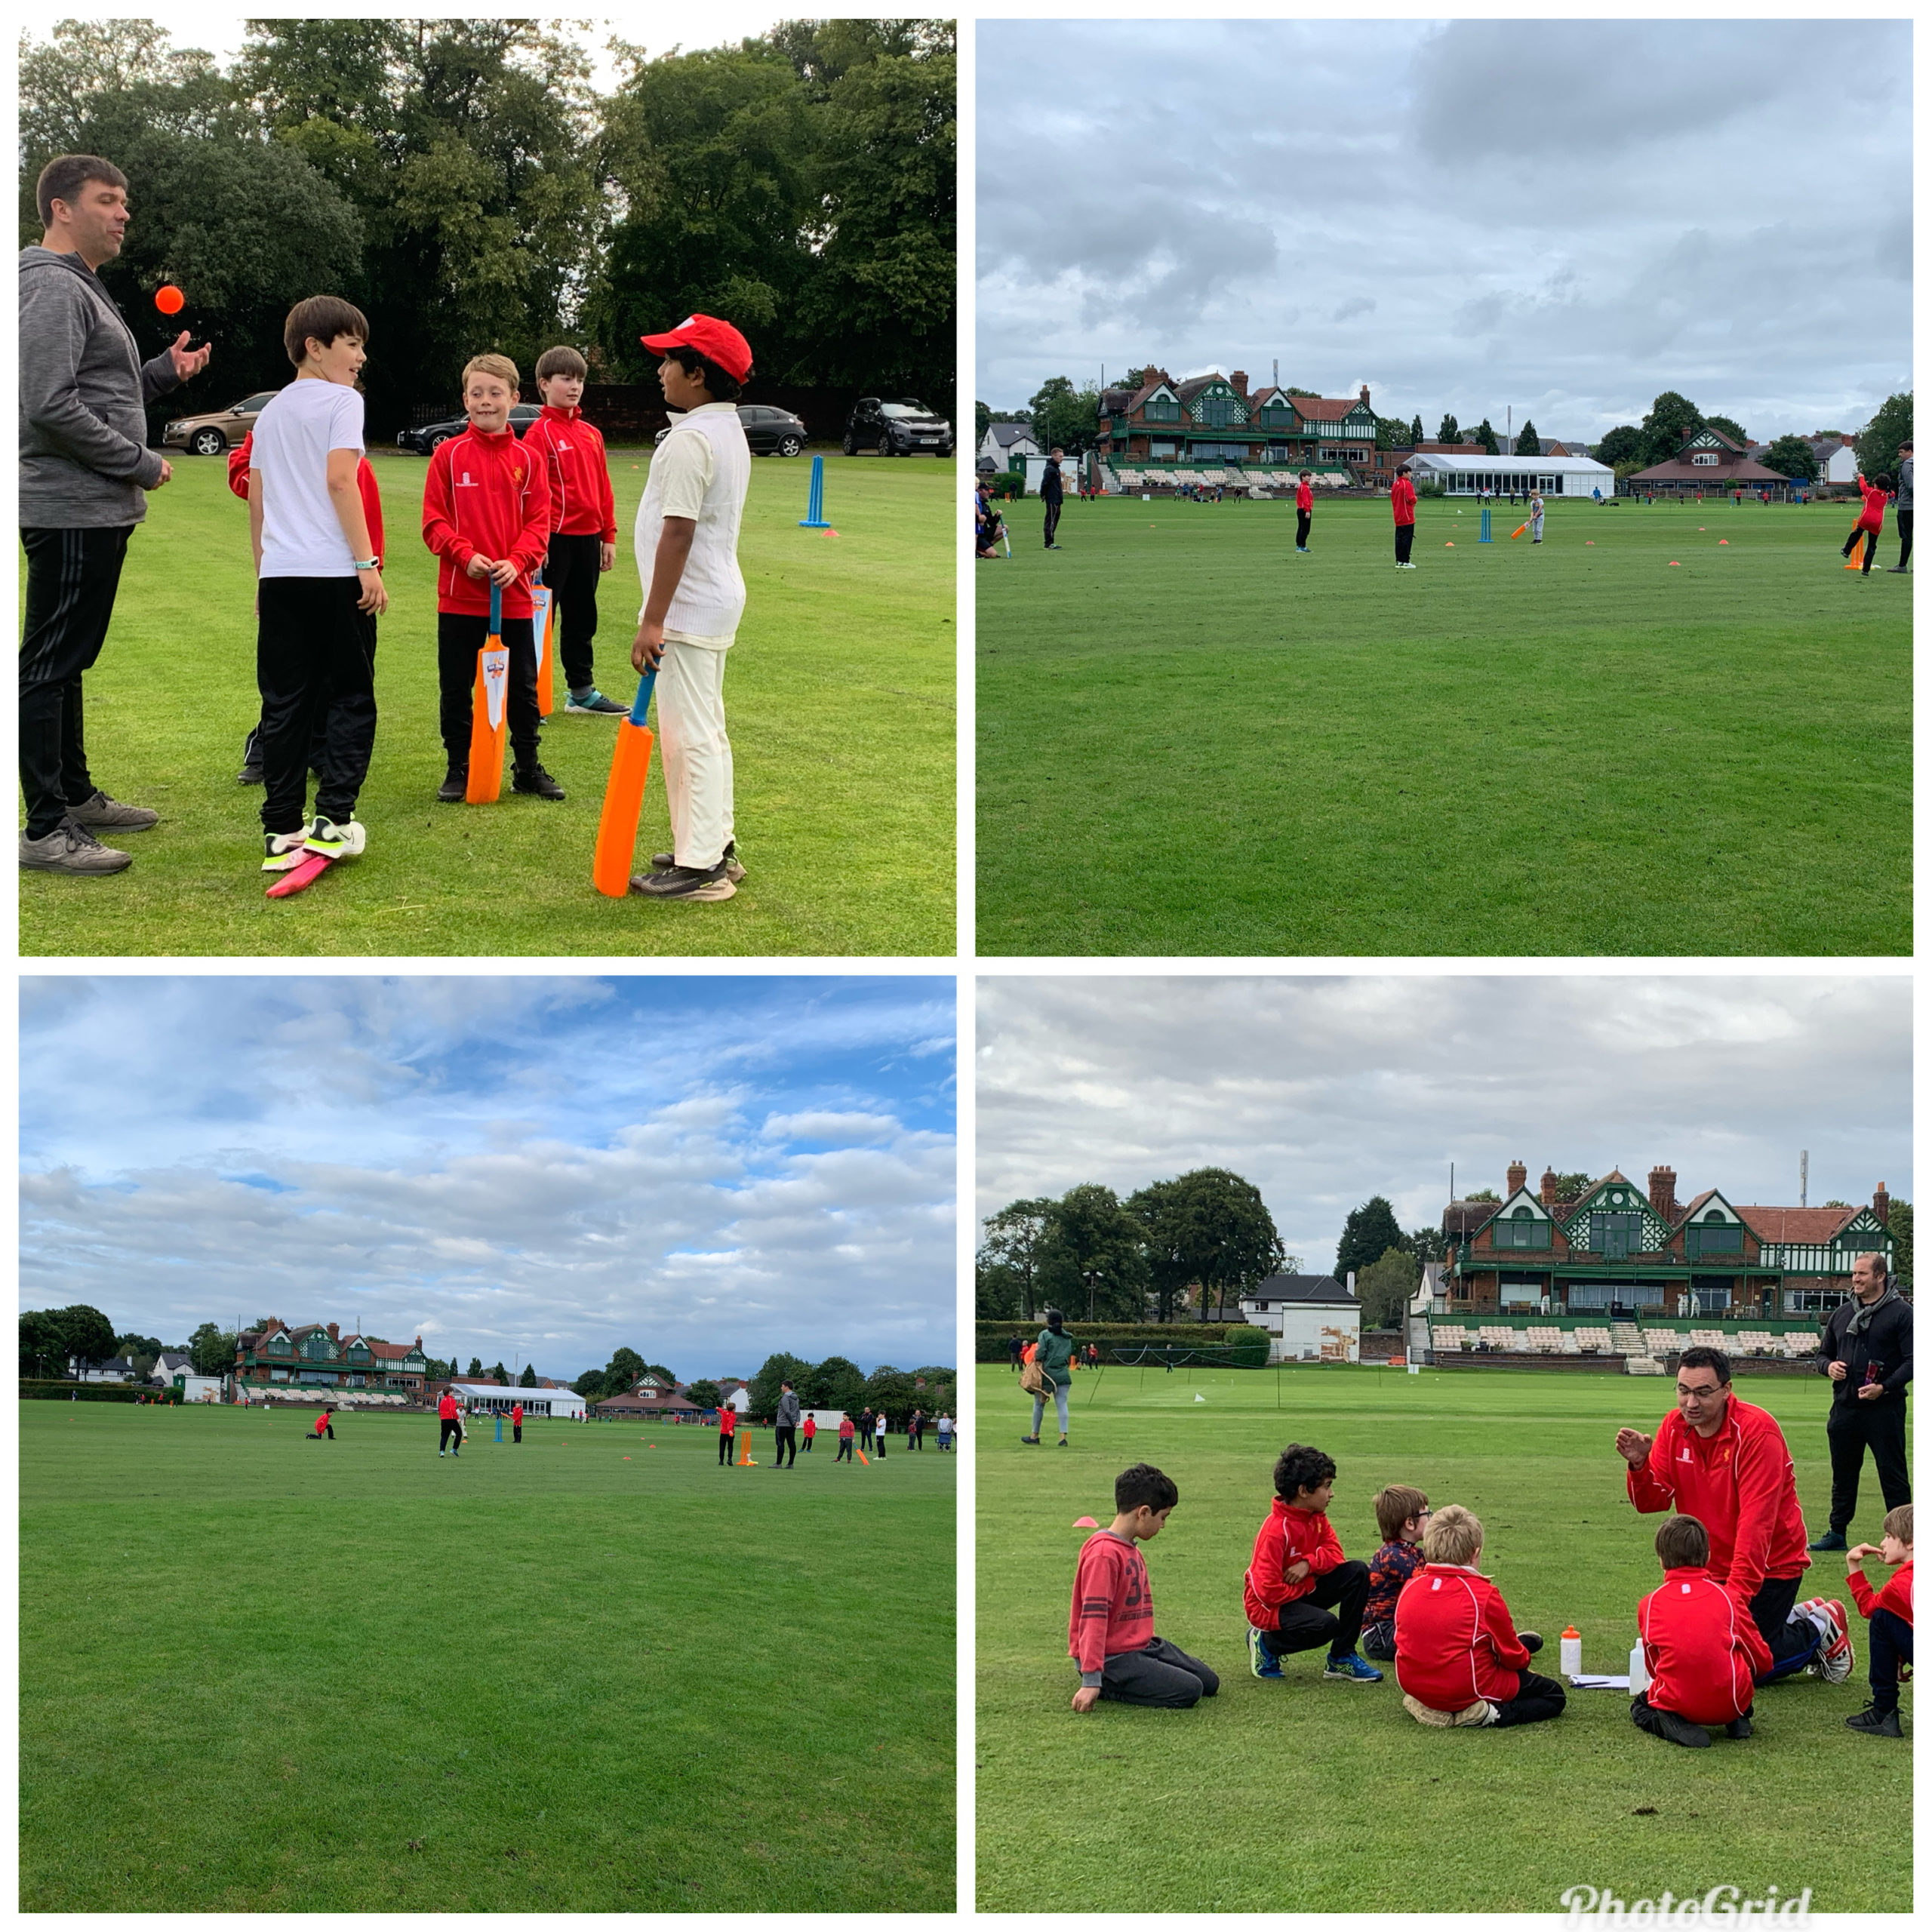 Under 9s first matches of the season